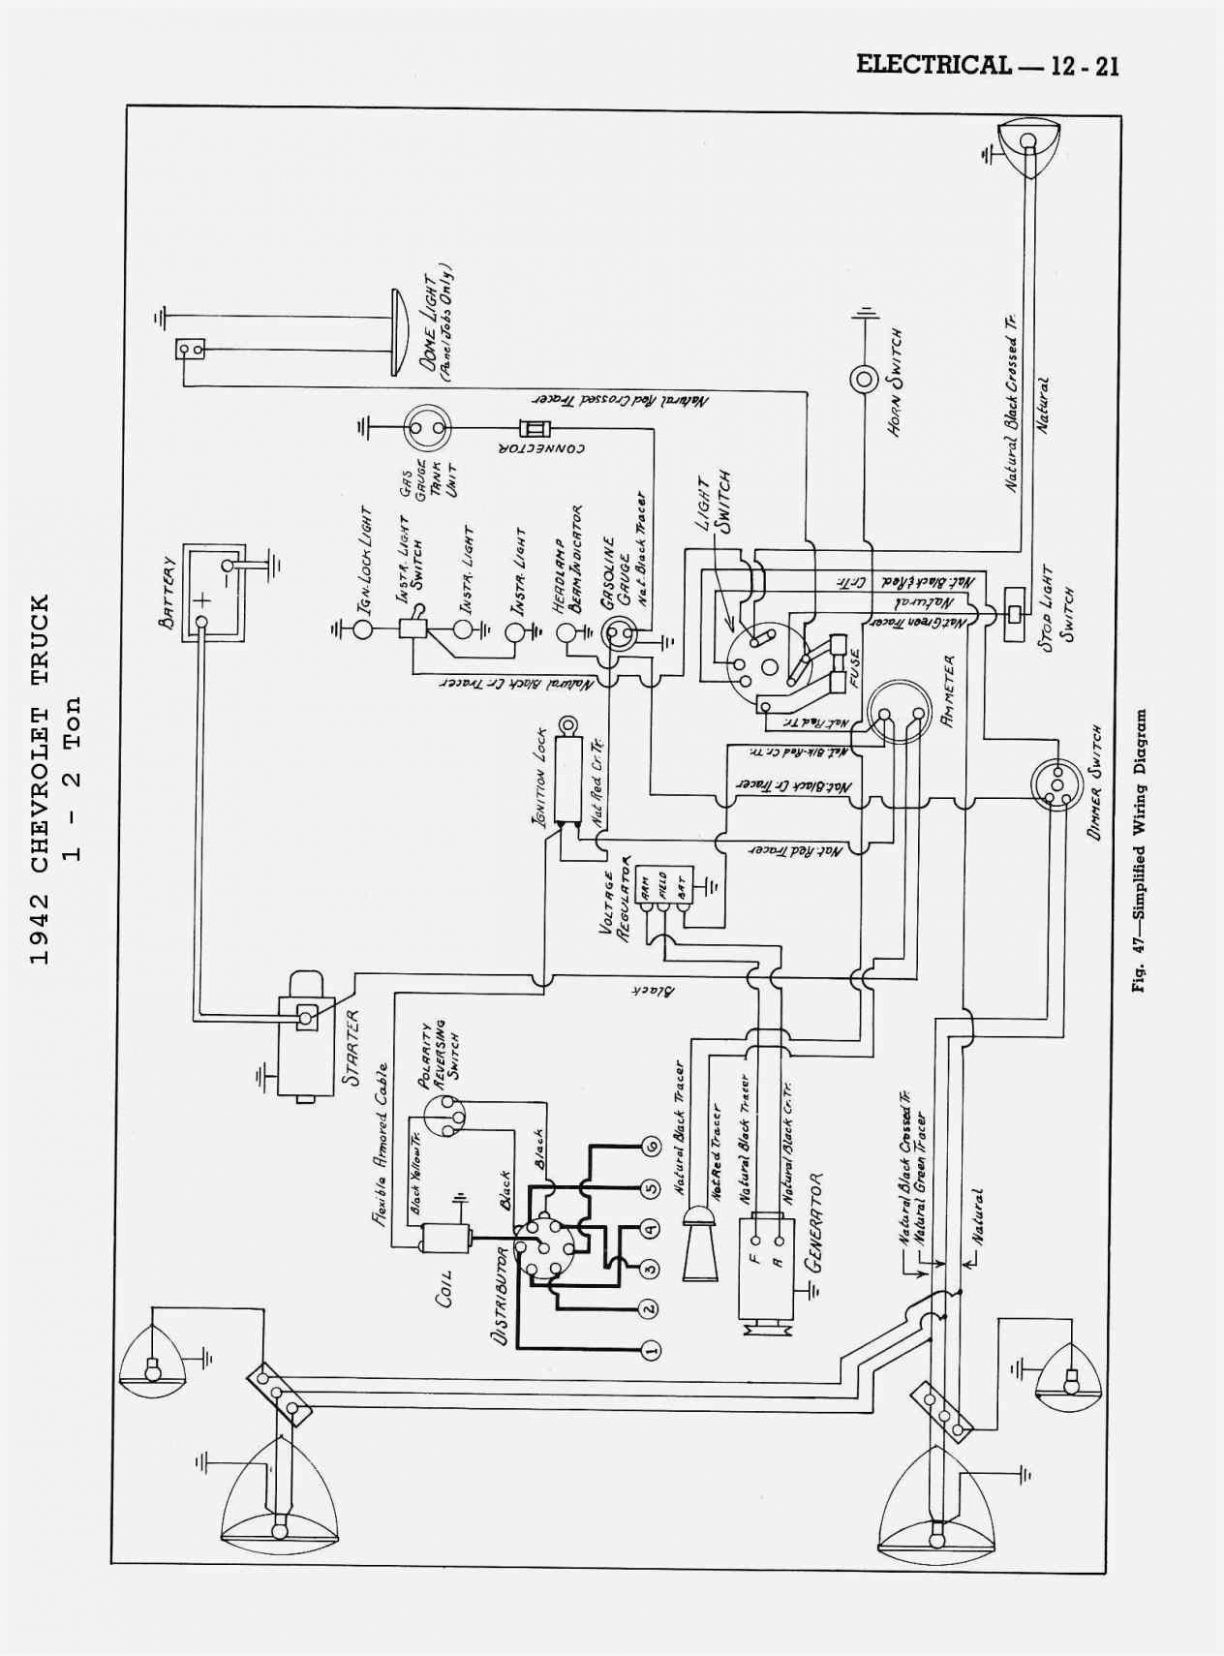 wiring diagram lights as well as electrical wiring diagram also